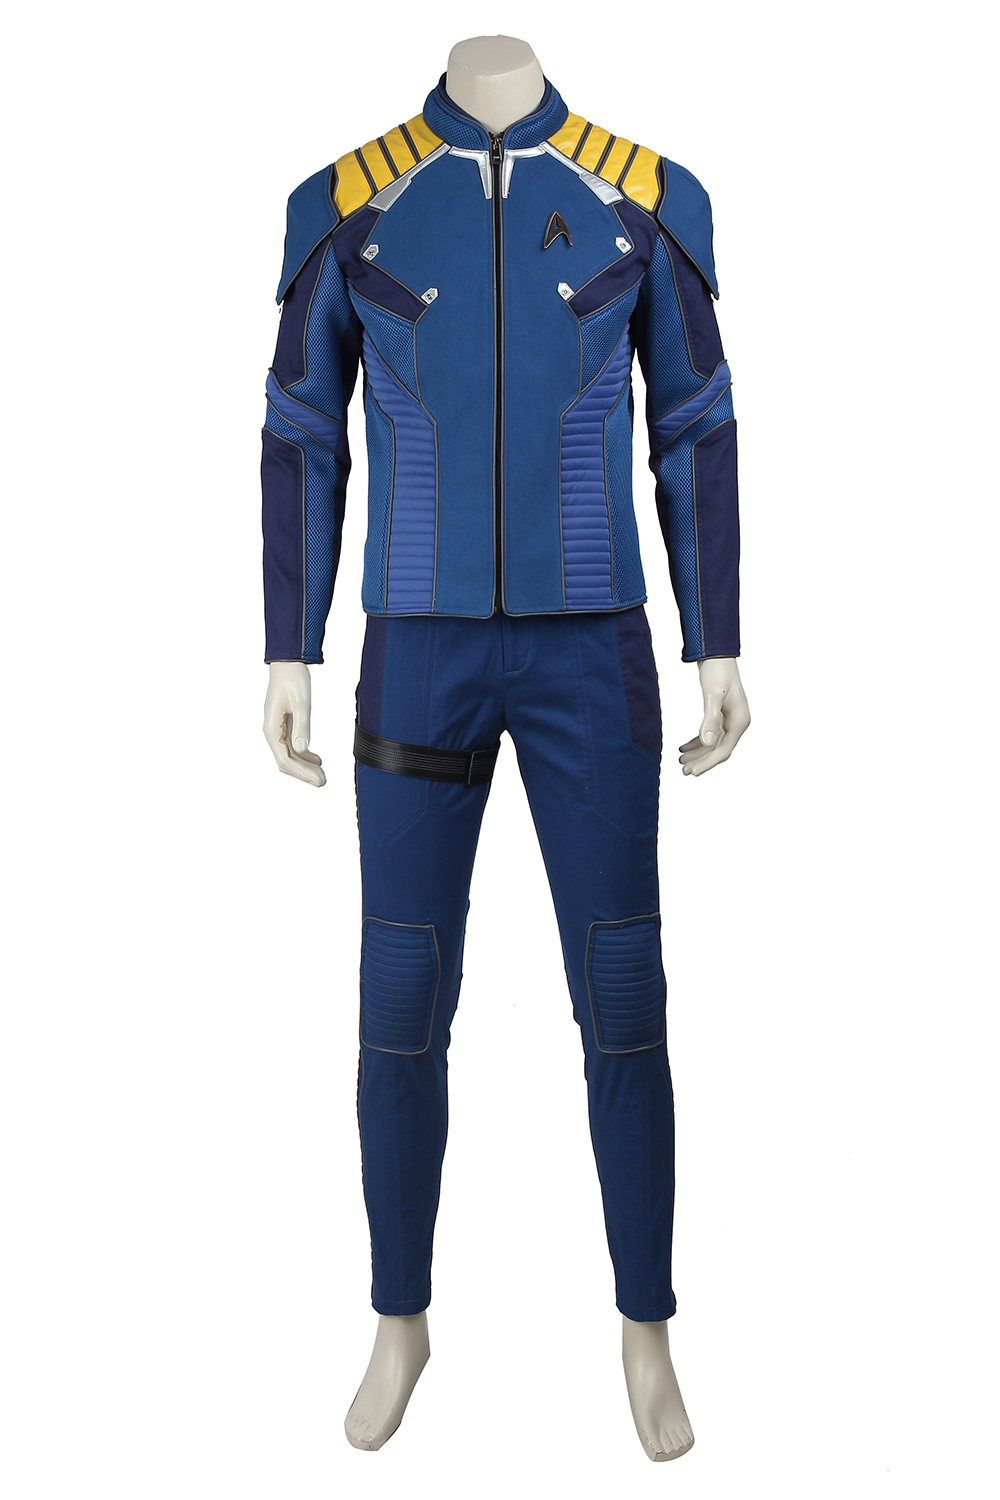 Star Trek Cosplay Beyond James Tiberius Kirk Jim Commander Captain Costume For Adult Men Full Set Outfit Clothing Custom Made